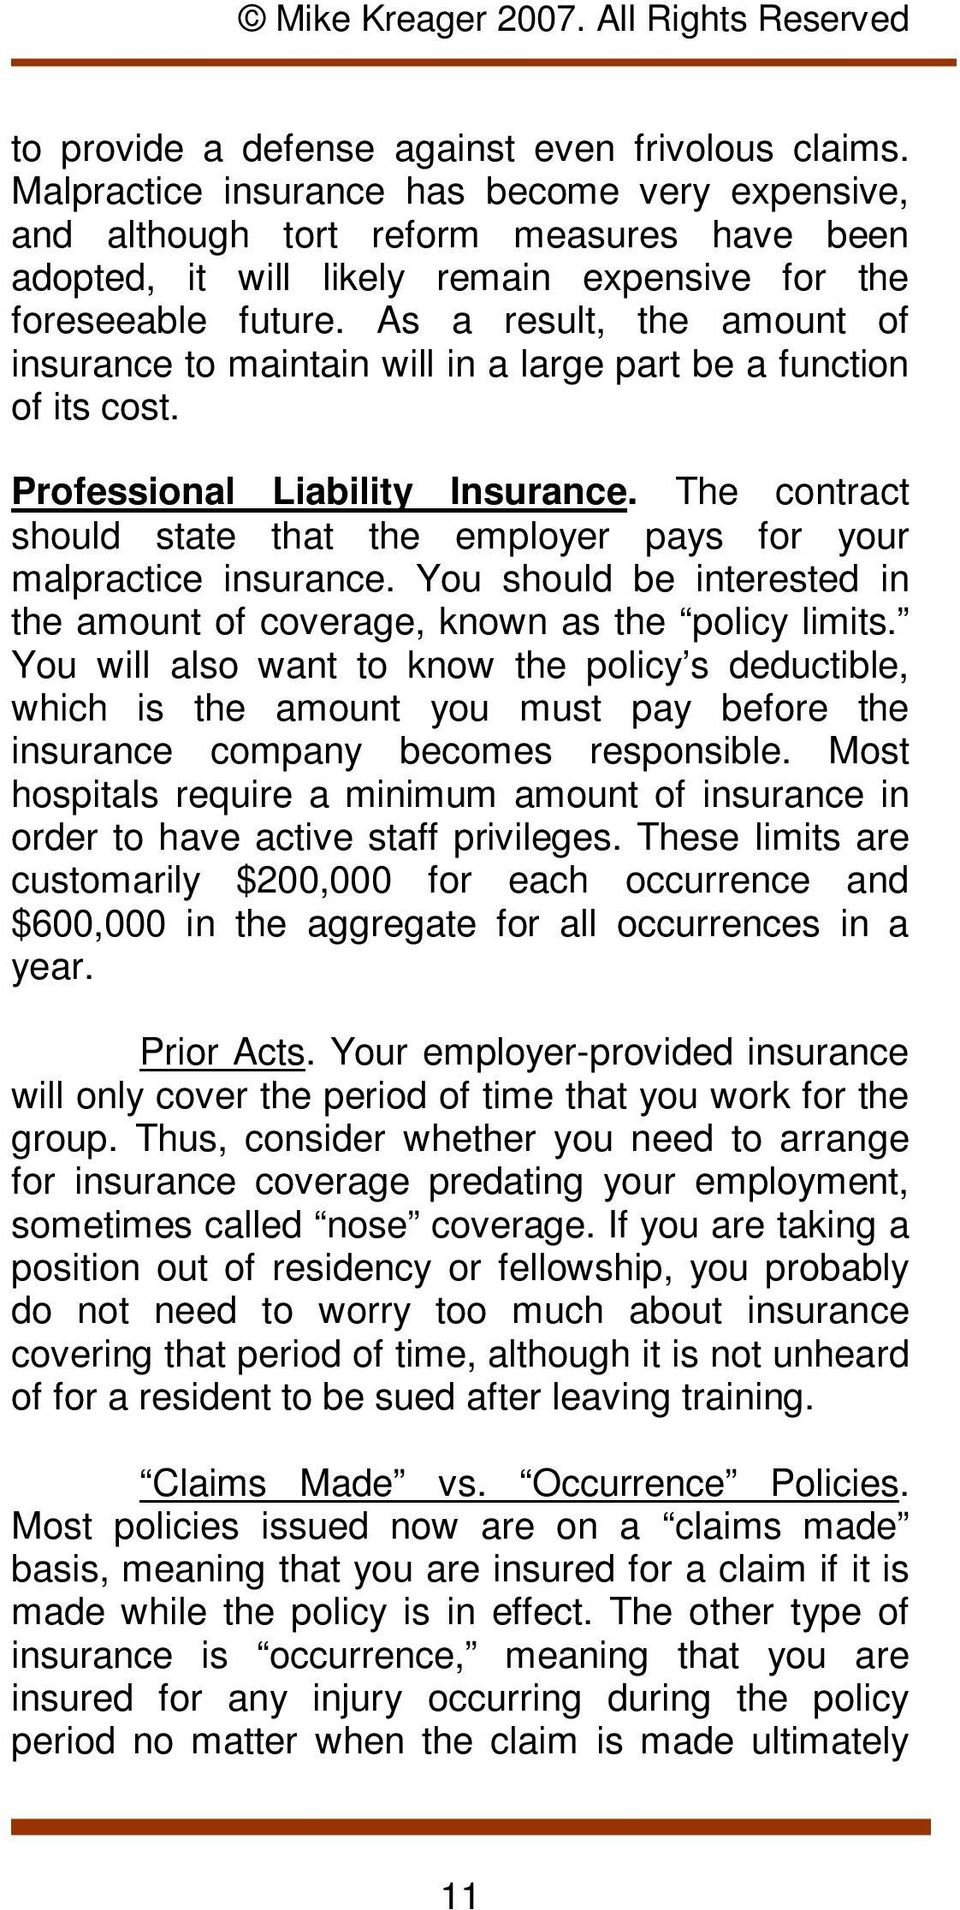 As a result, the amount of insurance to maintain will in a large part be a function of its cost. Professional Liability Insurance.